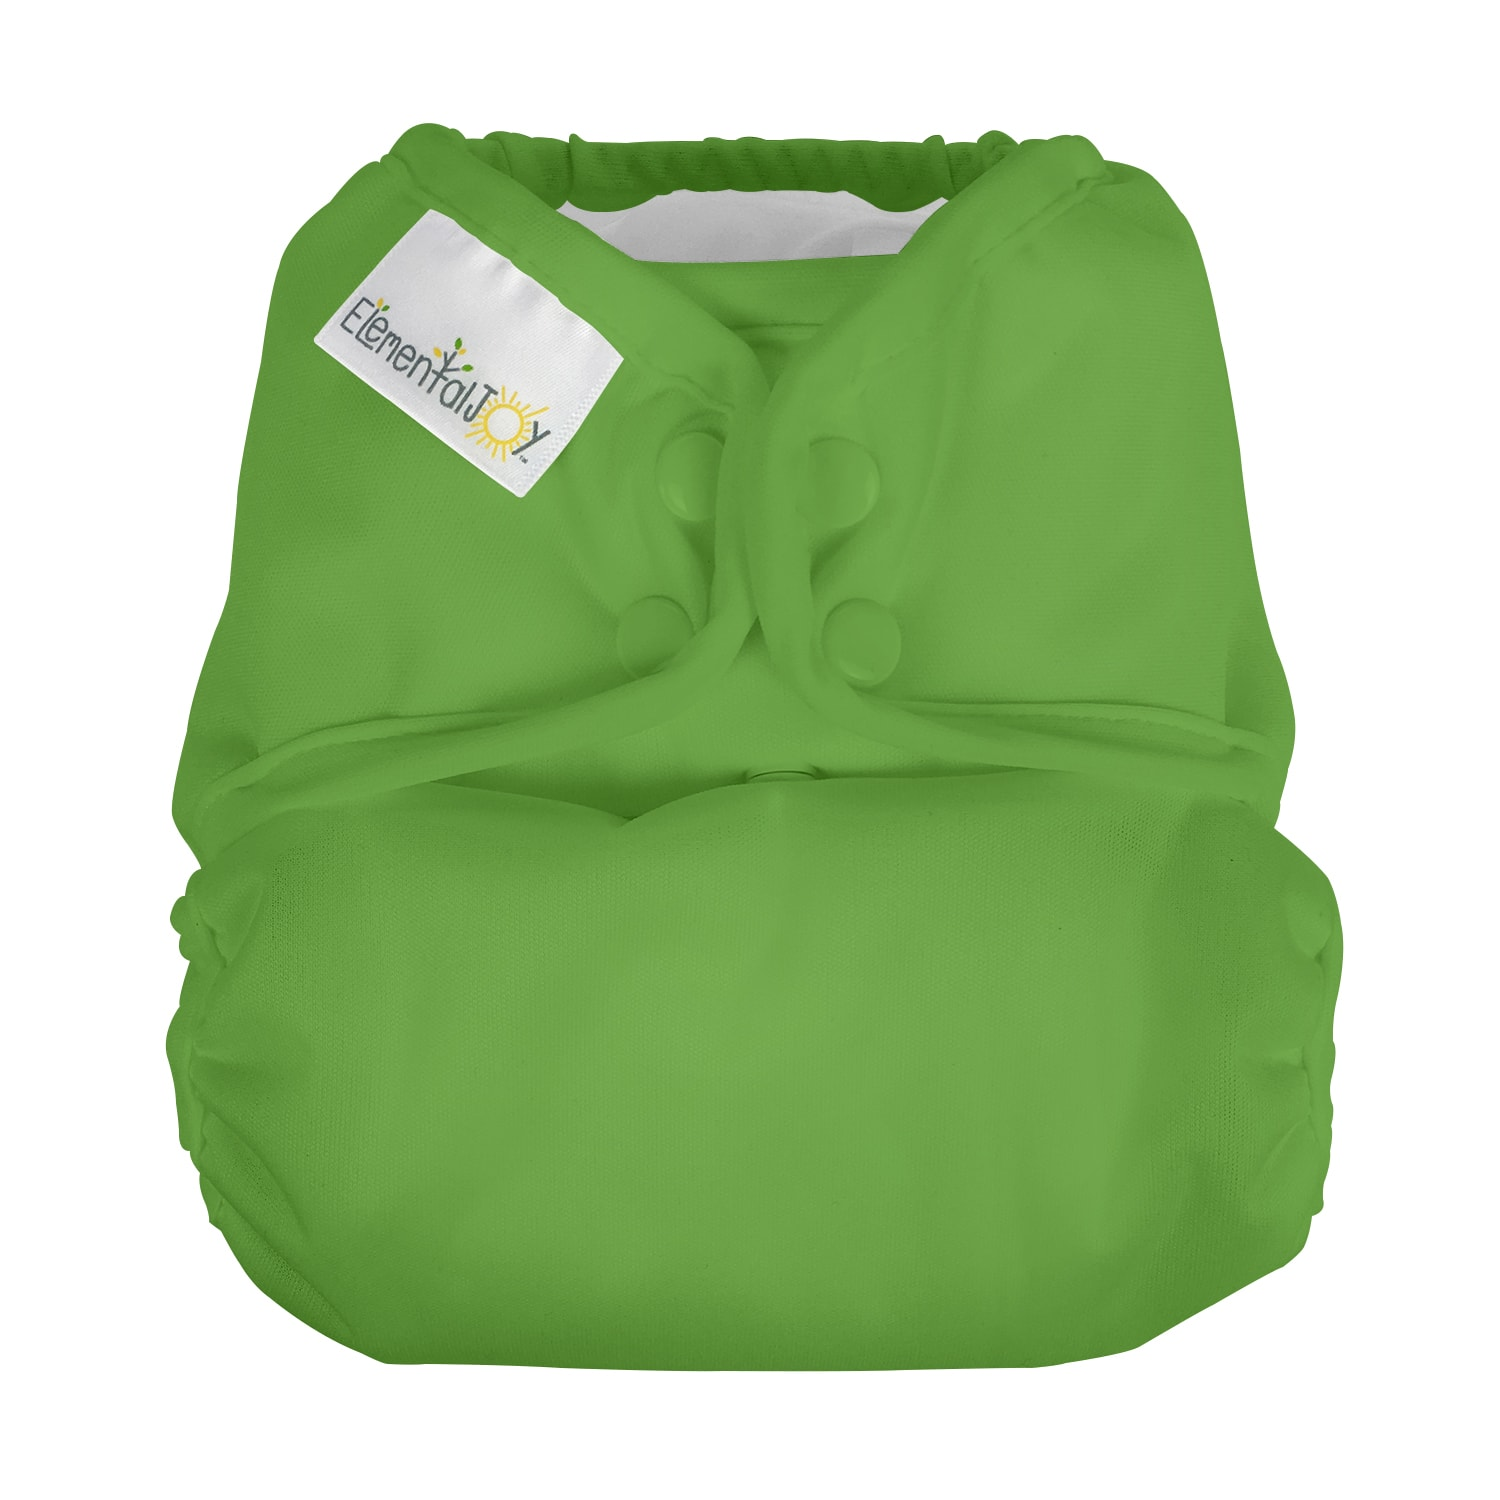 Elemental Joy Pocket Cloth Diaper - Ribbit